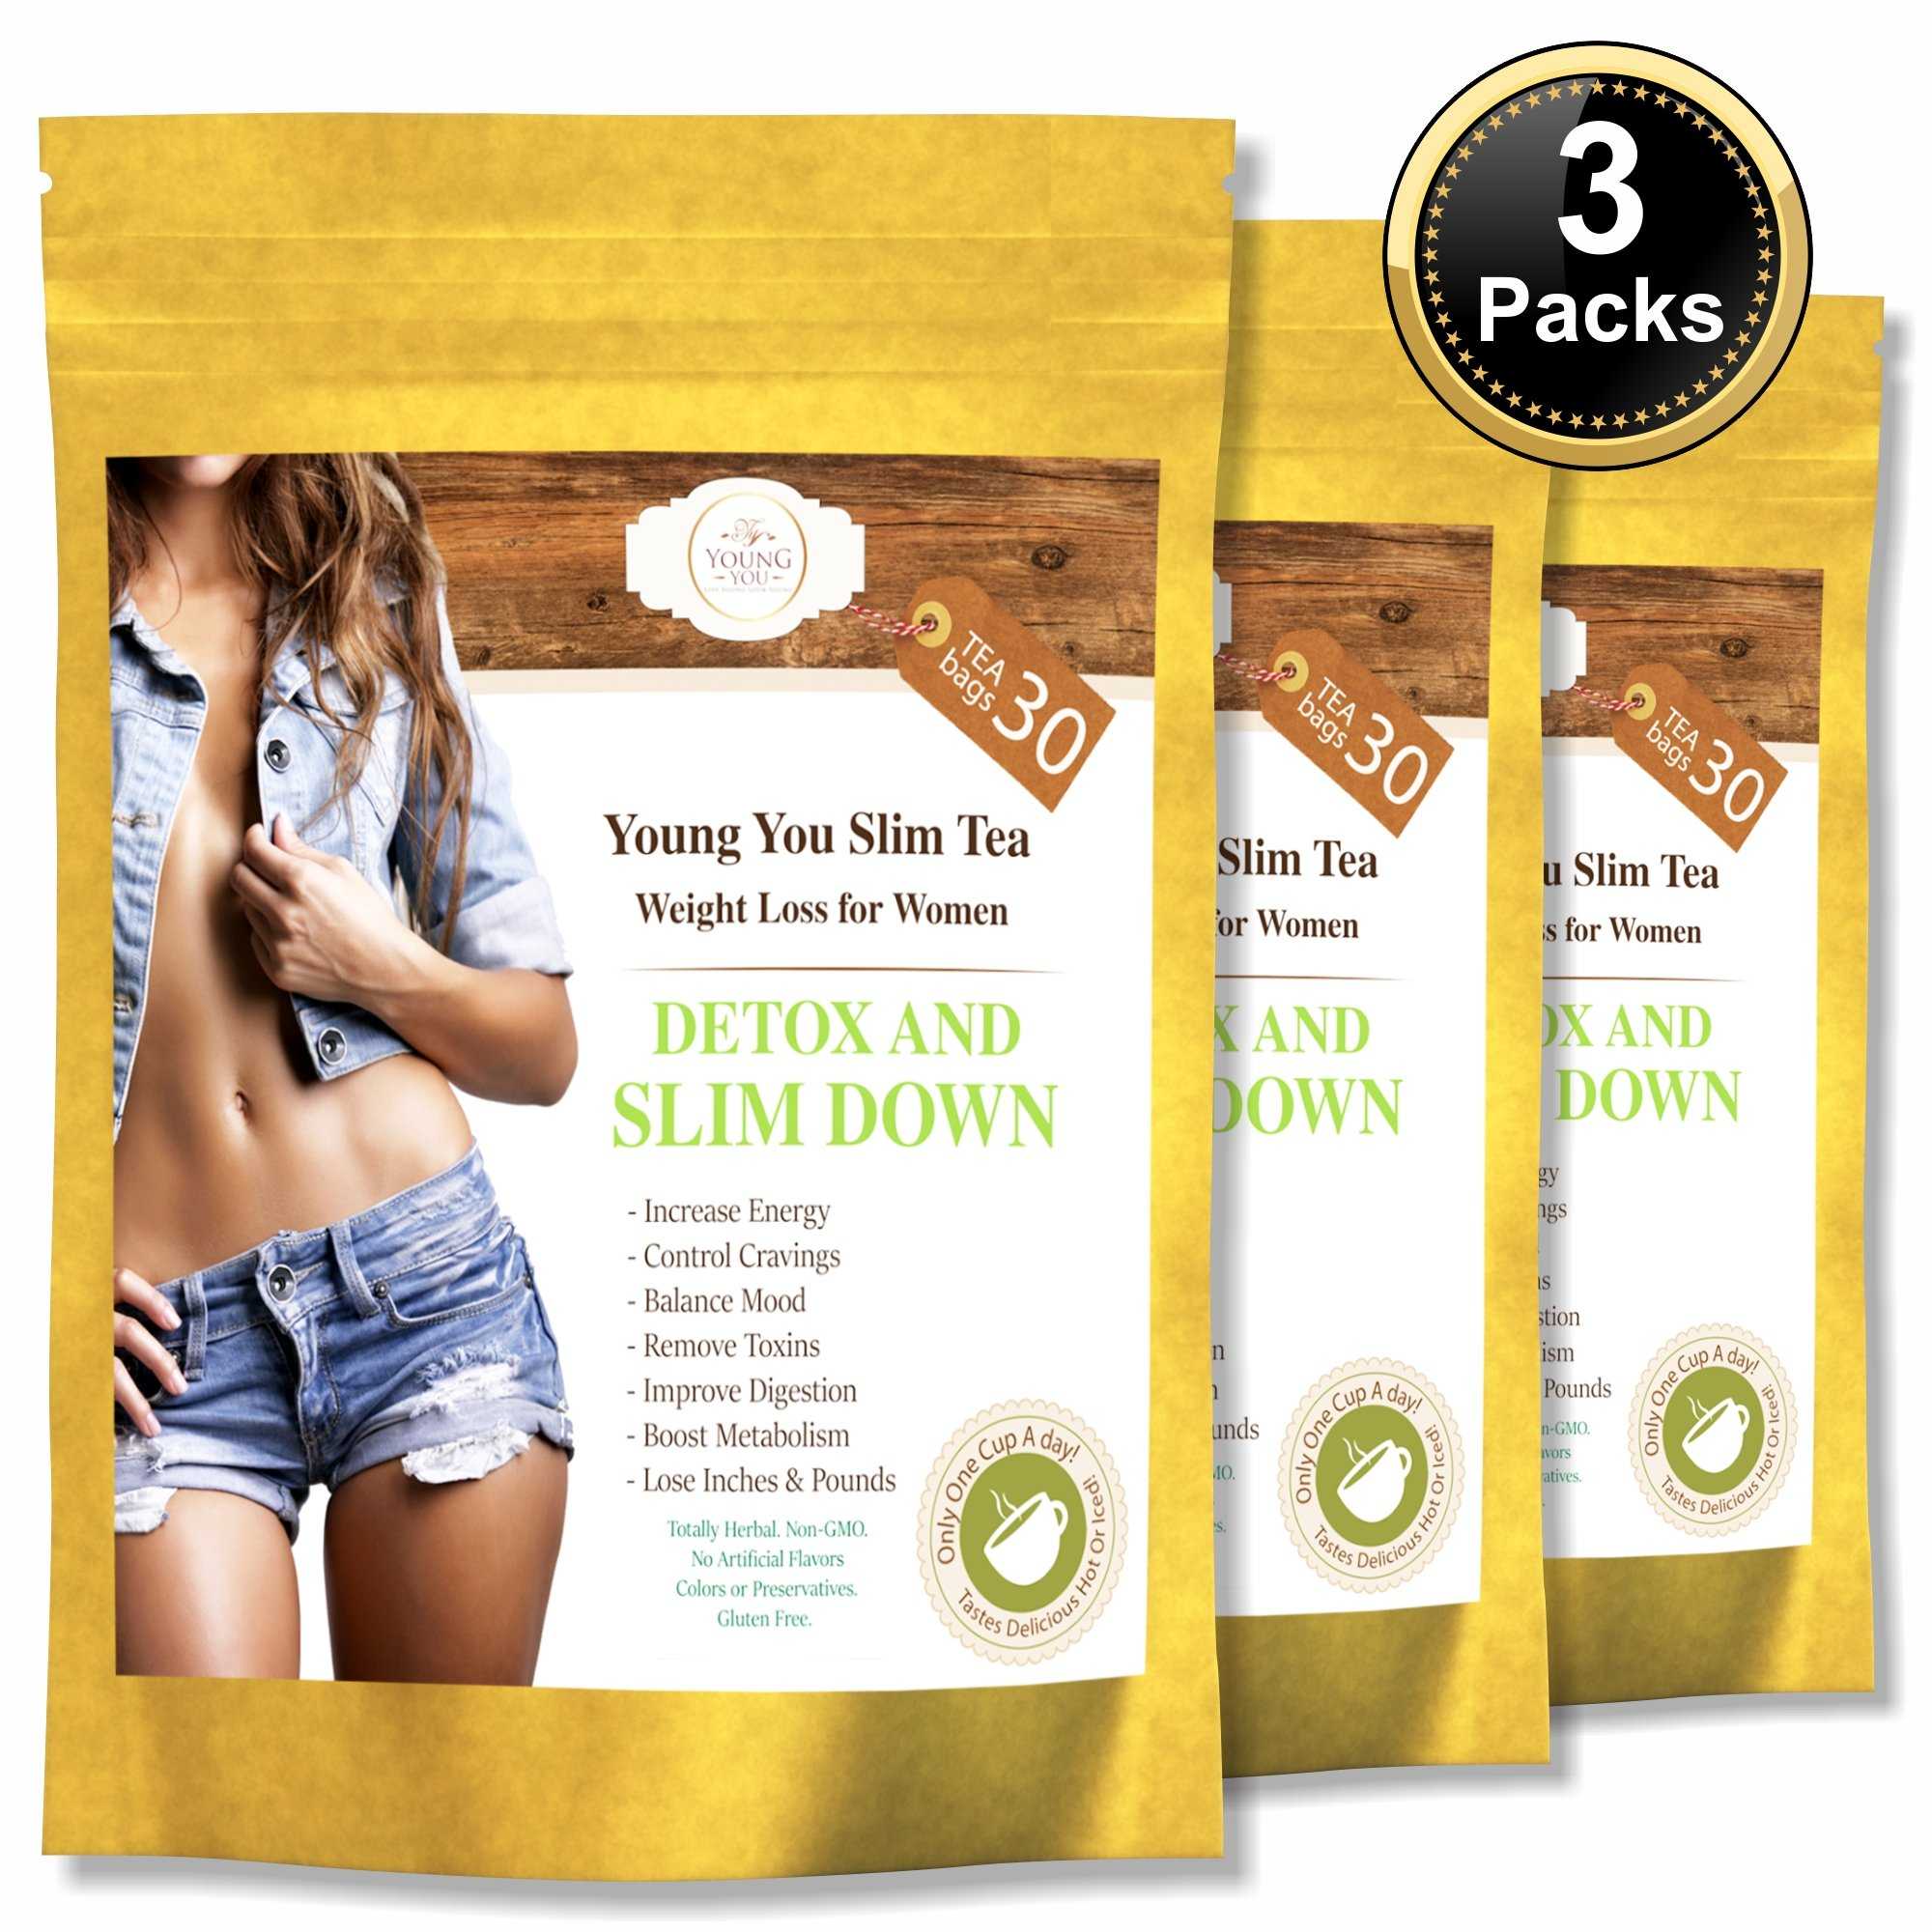 Detox and Cleanse Weight loss Tea. YoungYou Slim tea.